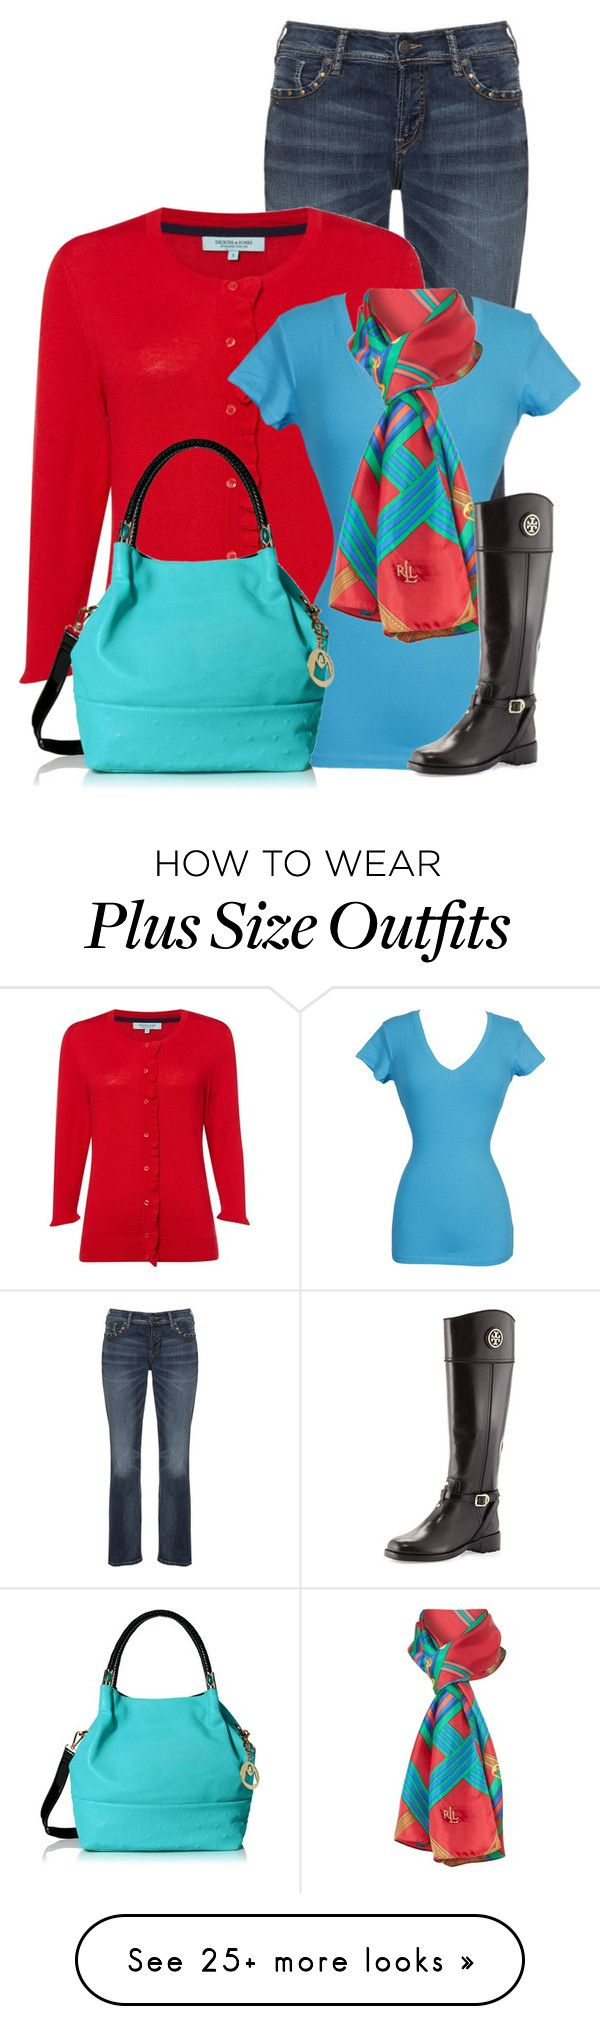 """""""Untitled #13247"""" by nanette-253 on Polyvore featuring Silver Jeans Co., Dickins & Jones, Lauren Ralph Lauren and Tory Burch"""